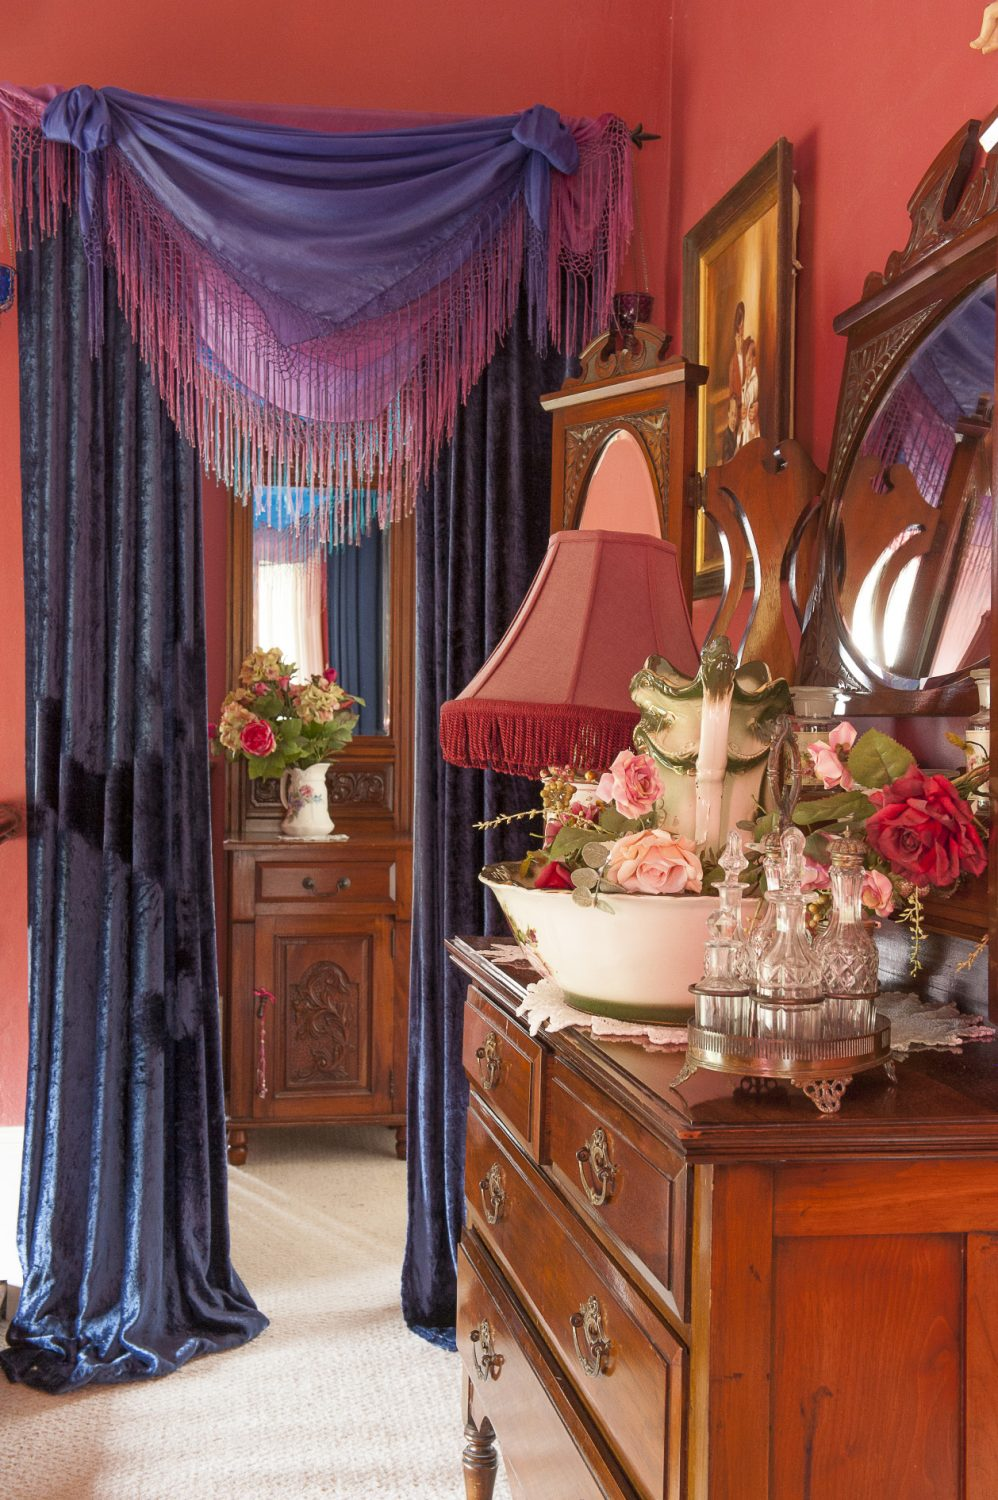 Upstairs, tasseled scarves and velvet curtains veil the entrance to the master bedroom